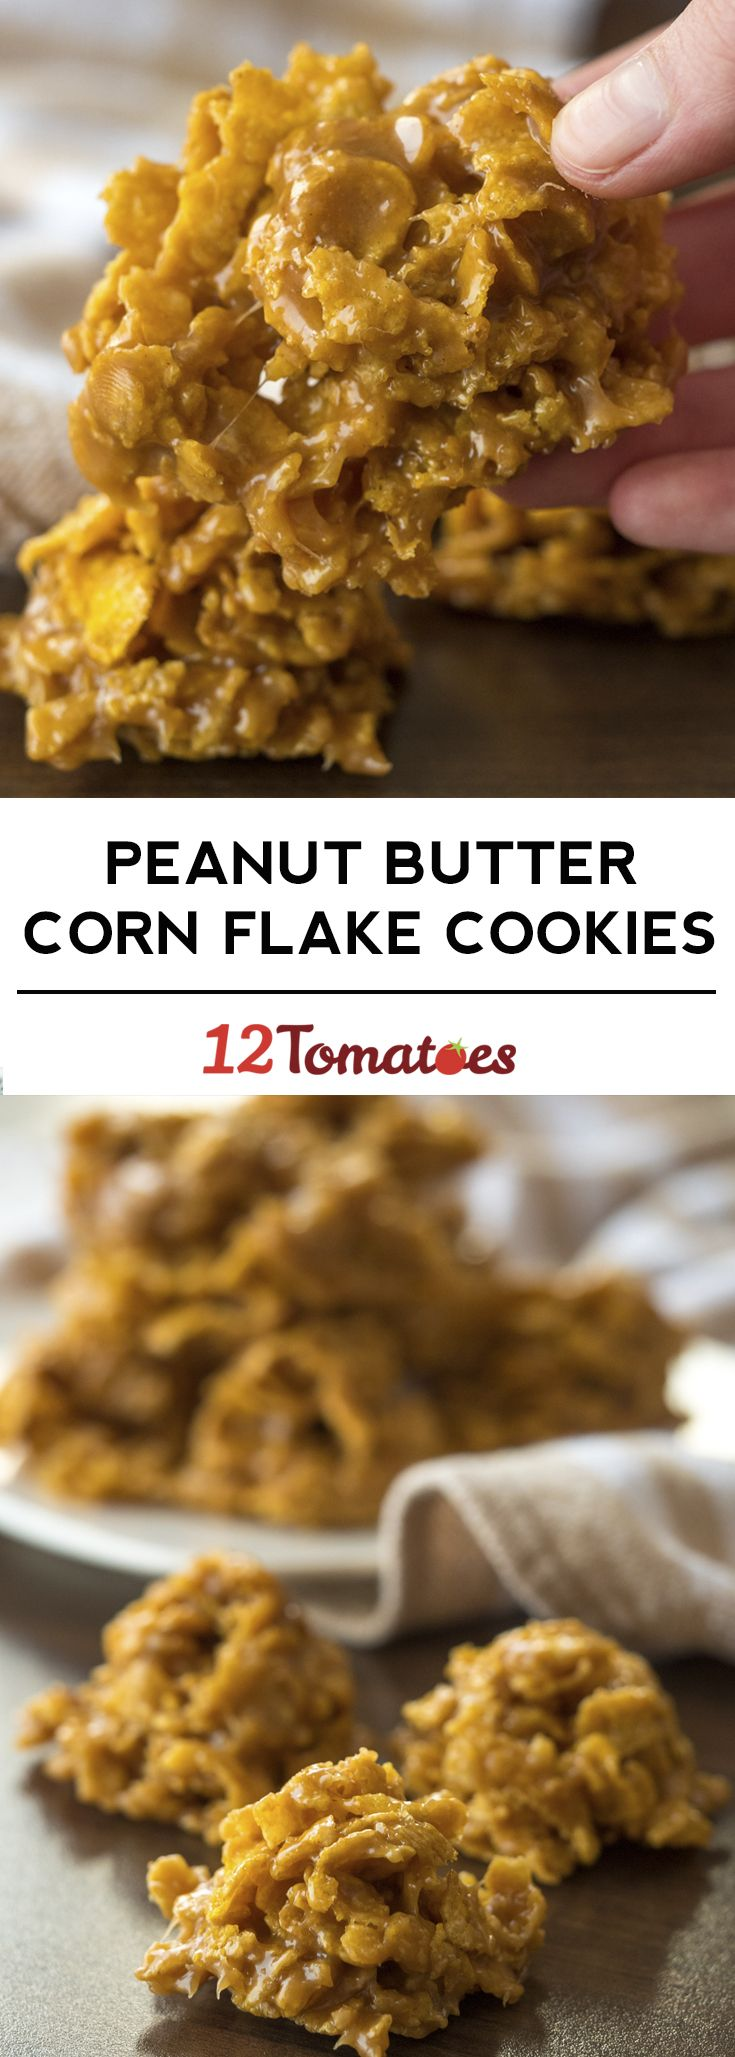 No-bake peanut butter corn flake cookies!